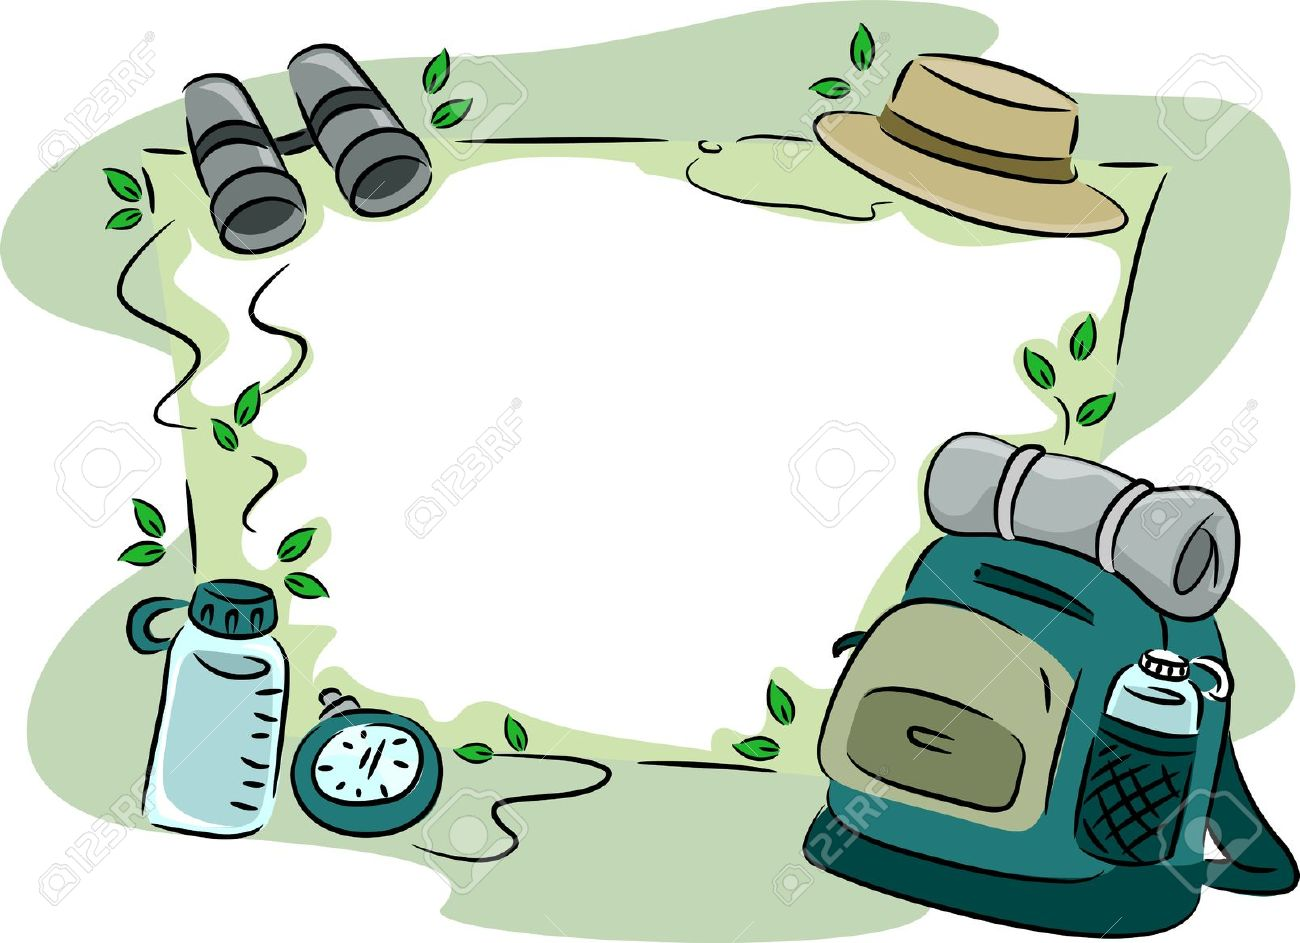 Hiking clipart camping gear Art clip Hiking gear Gallery